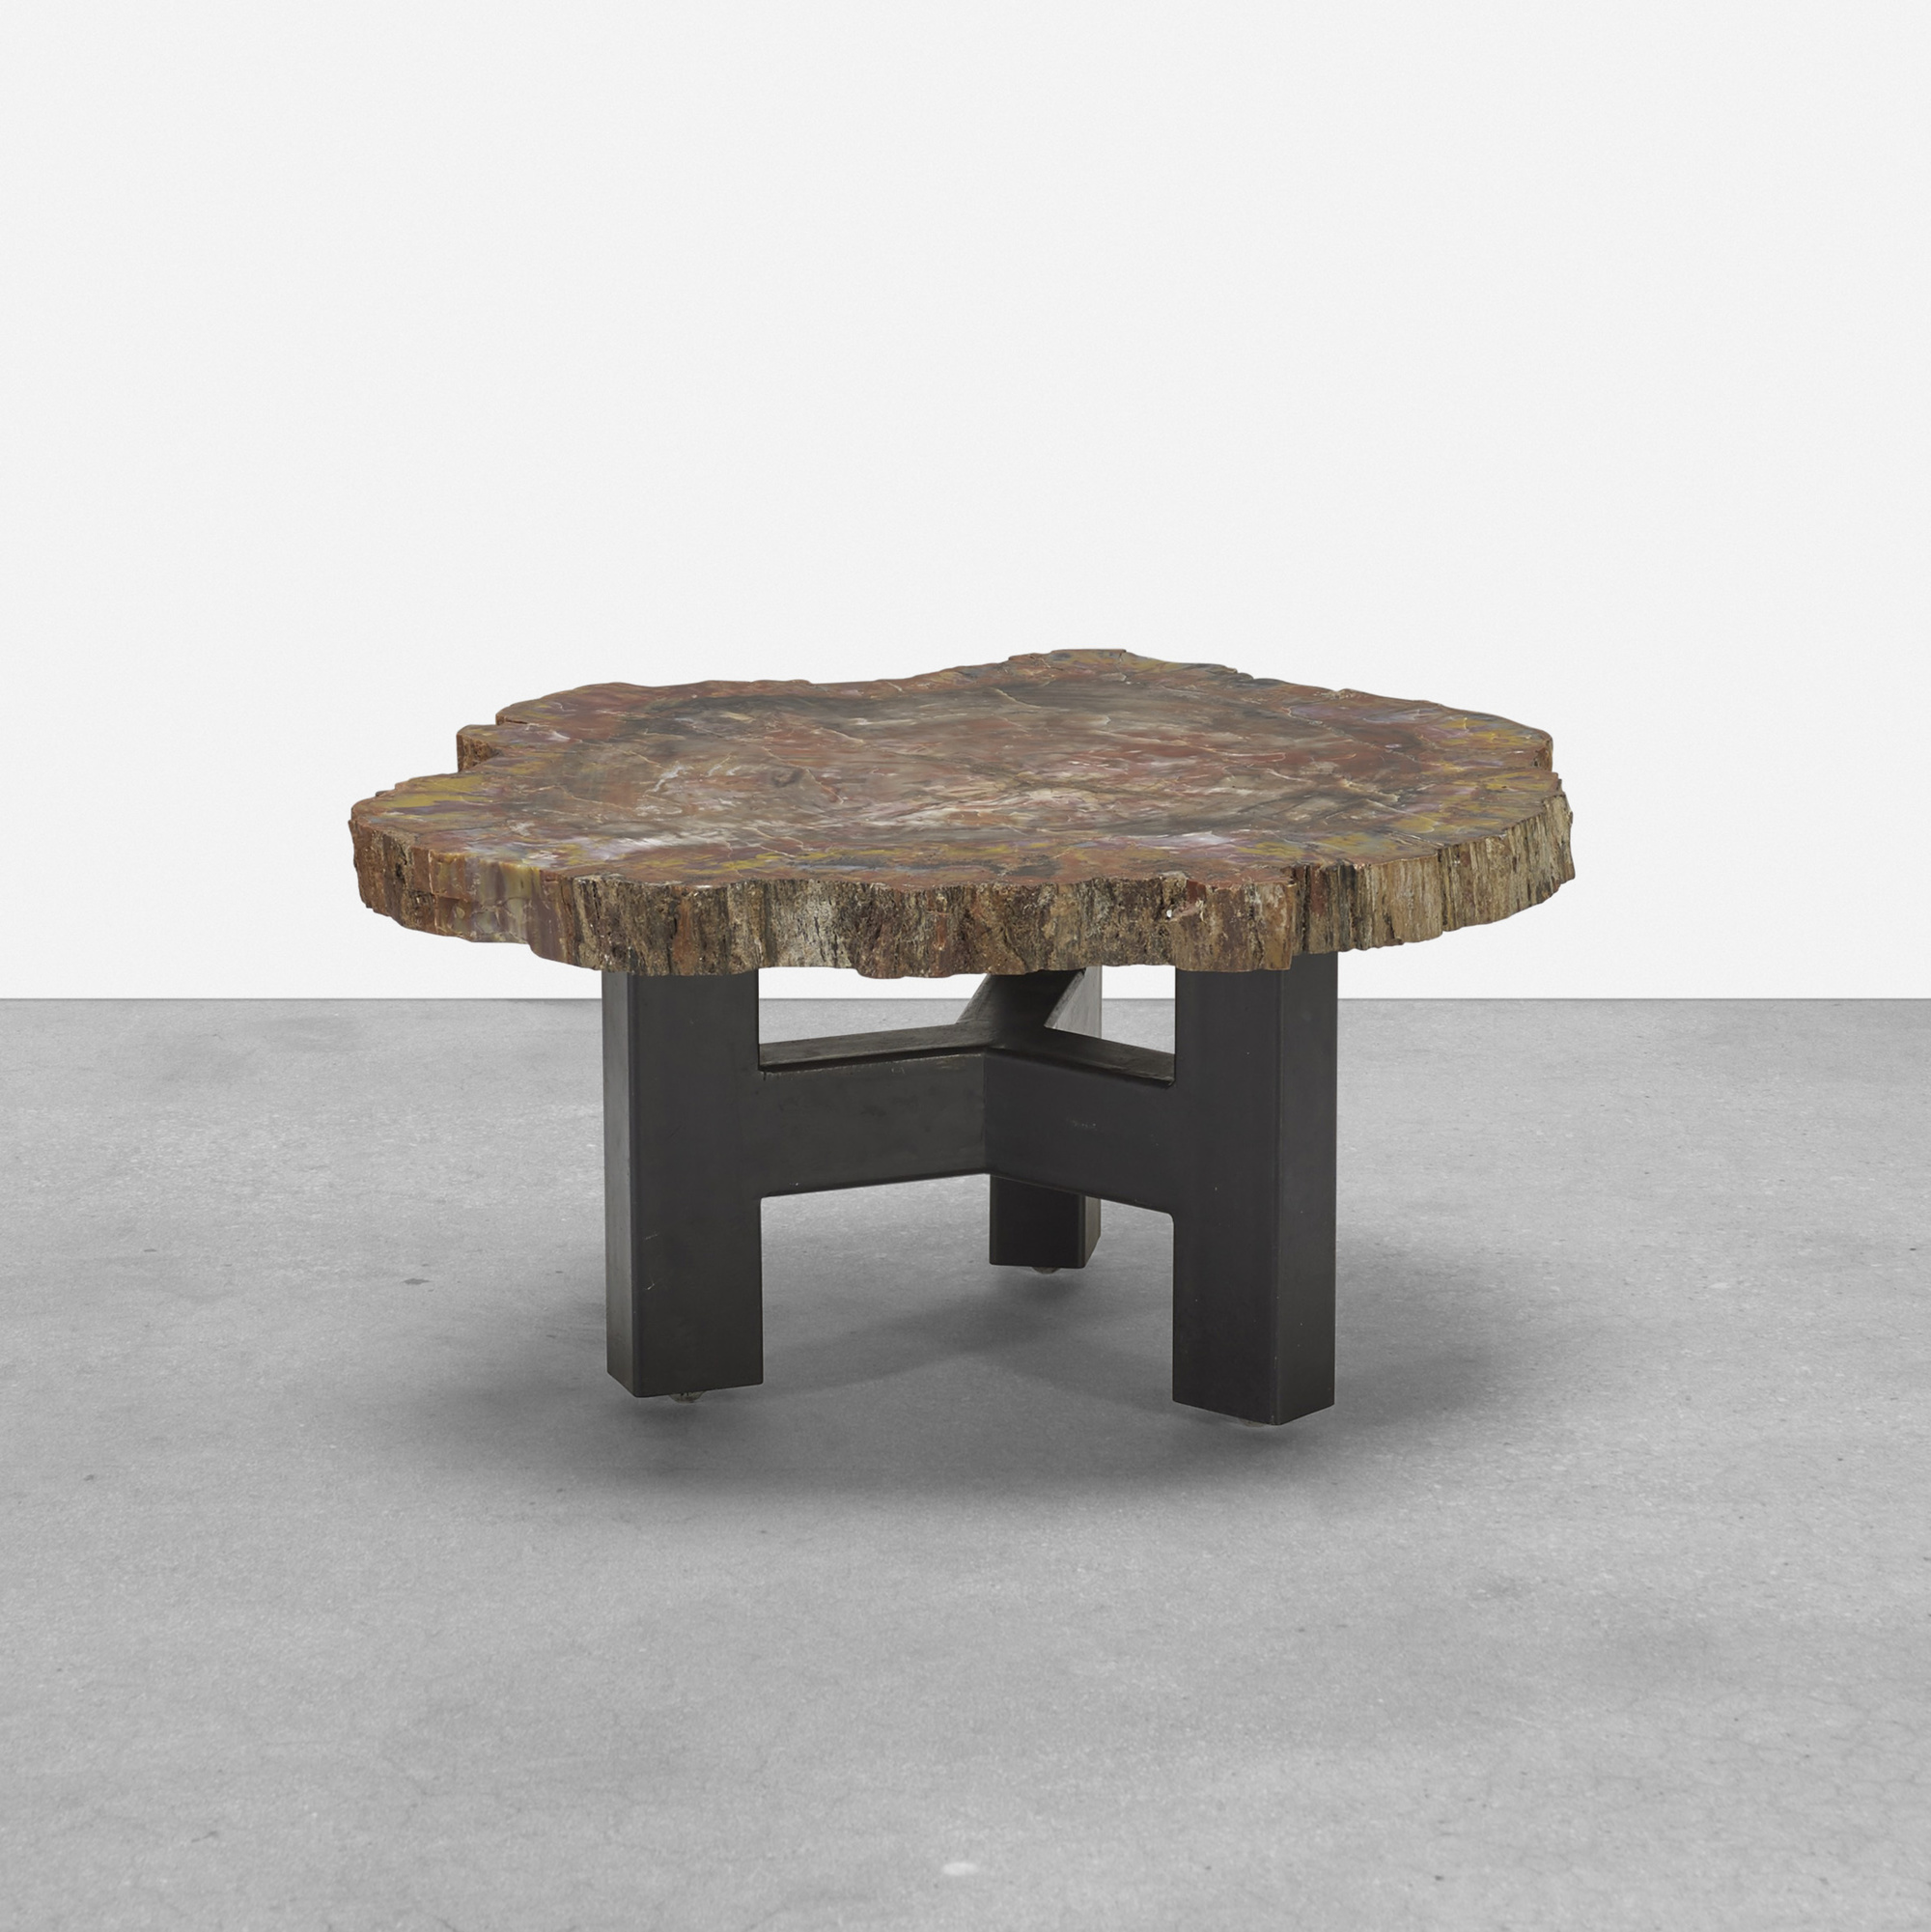 300: Ado Chale / occasional table (1 of 1)